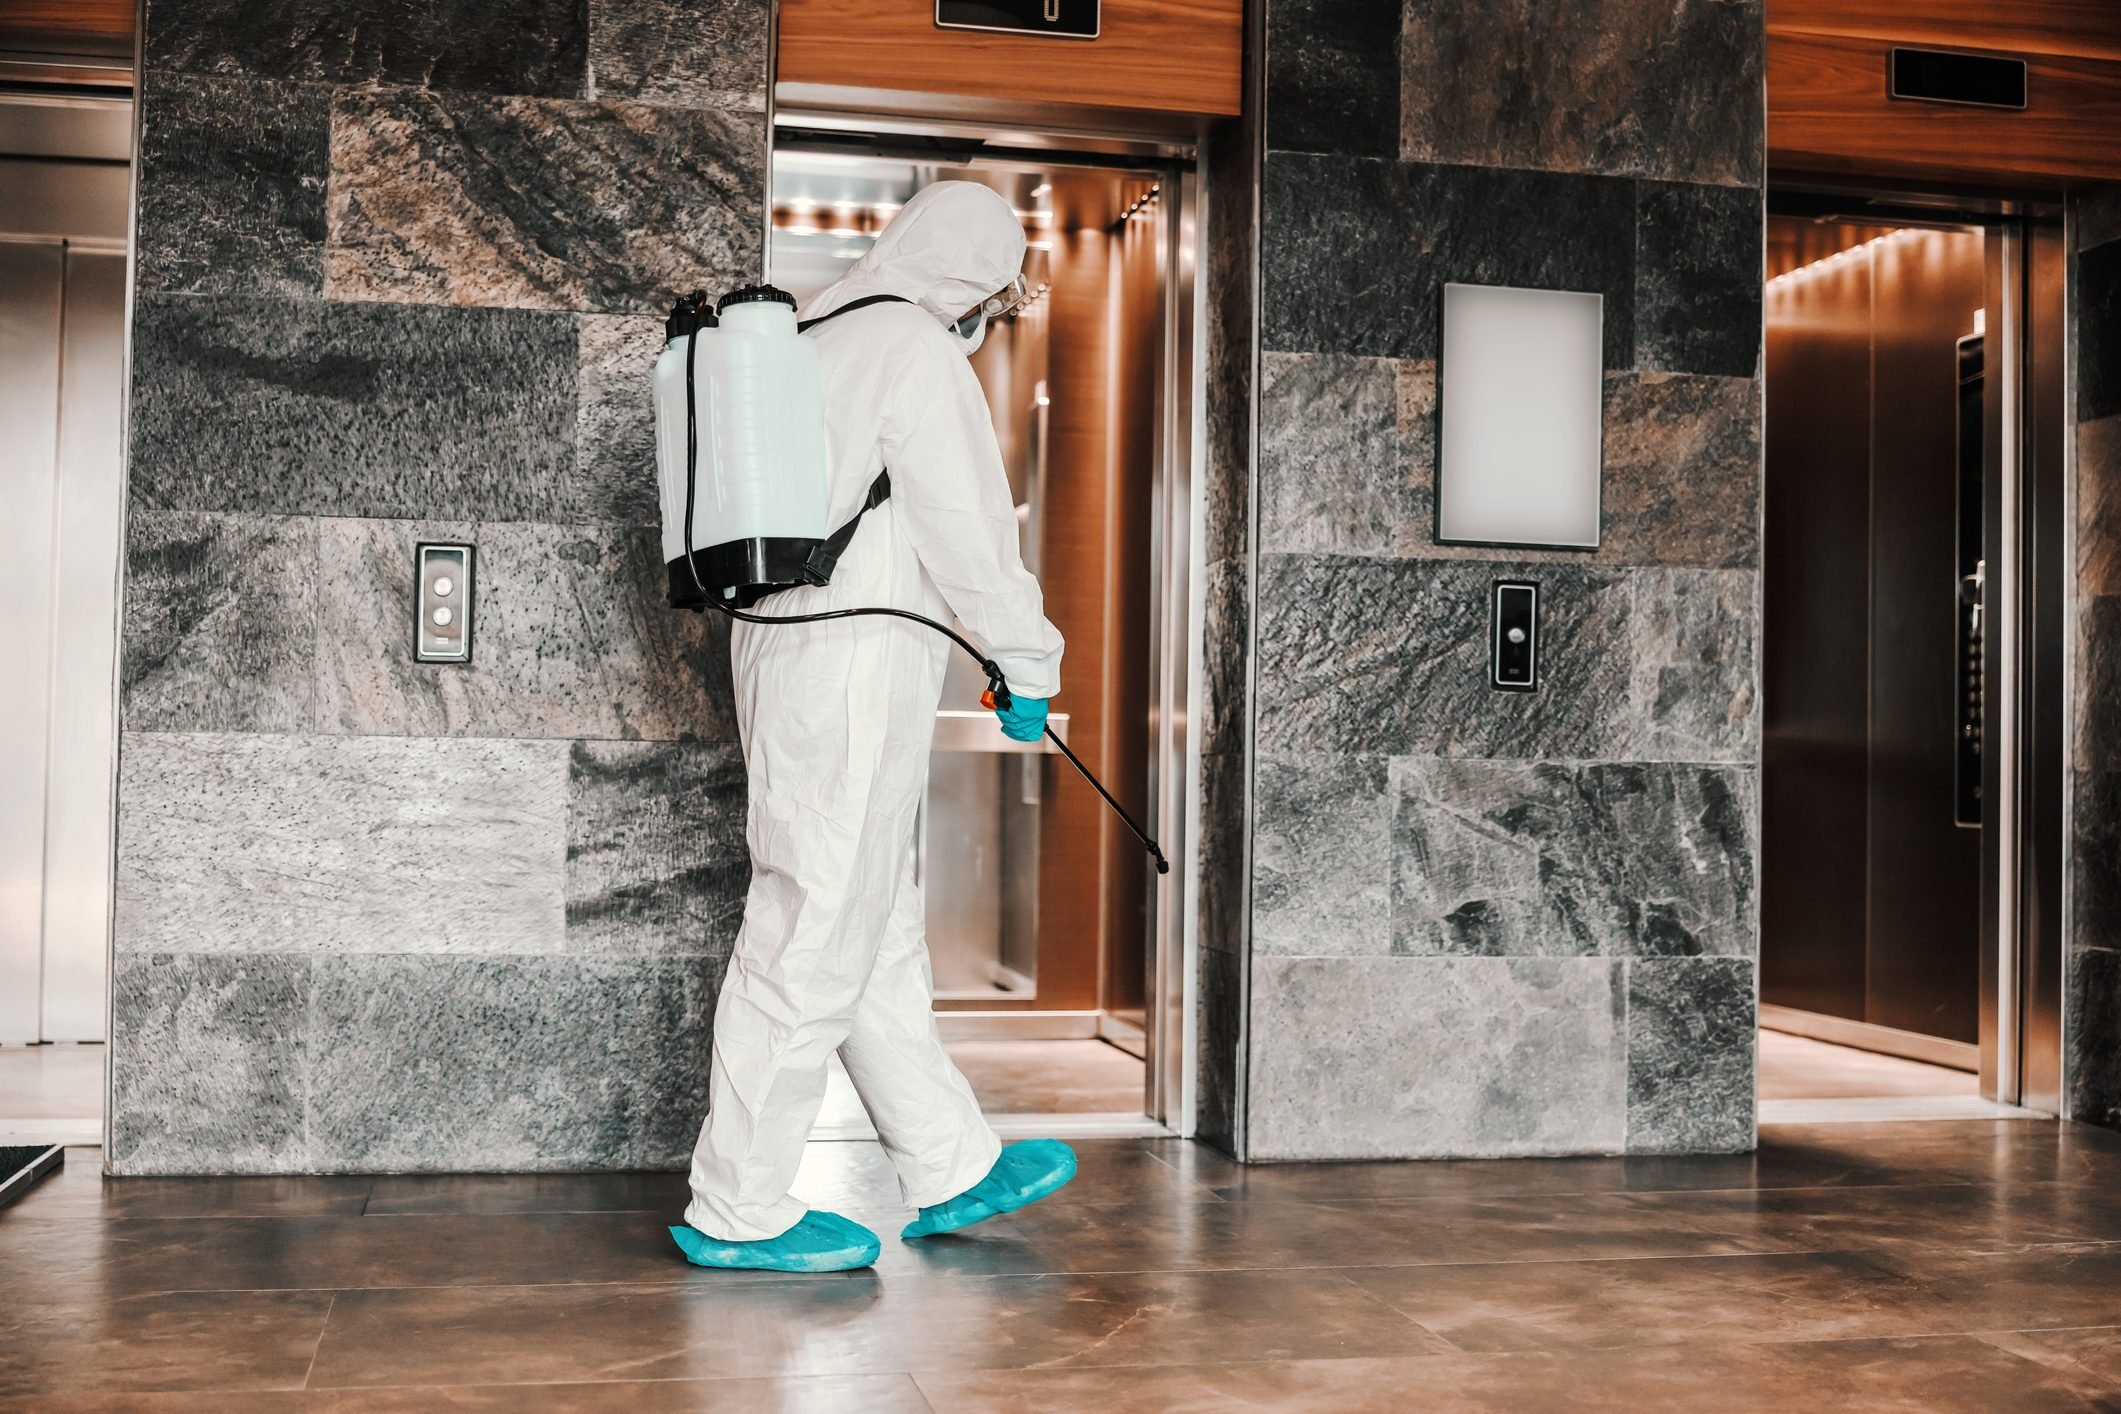 person spraying disinfectant around the elevator in the lobby of a hotel